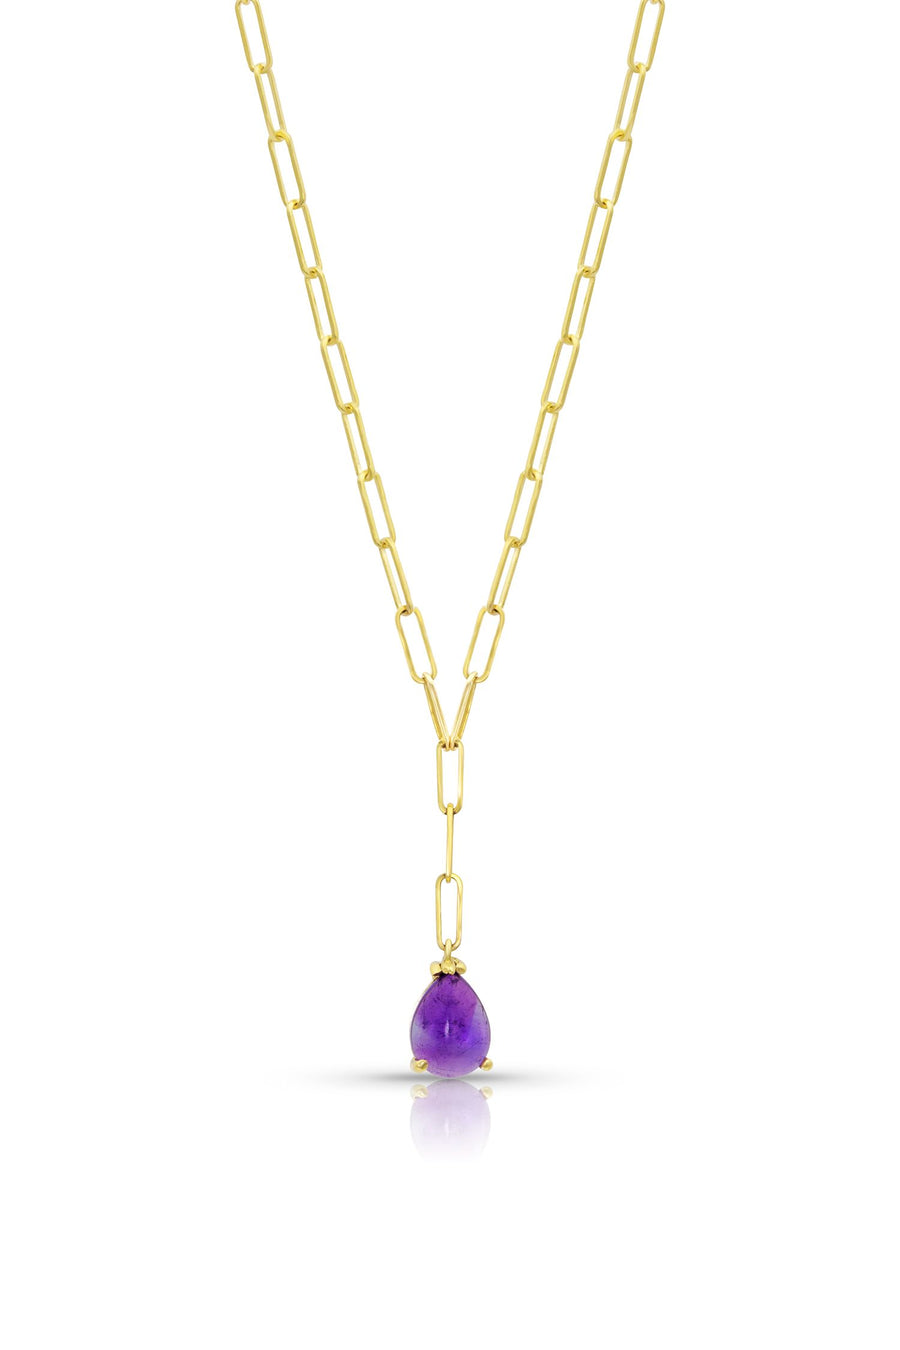 Design Your Own Gemdrop Necklace - Single Drop - Jo Latham